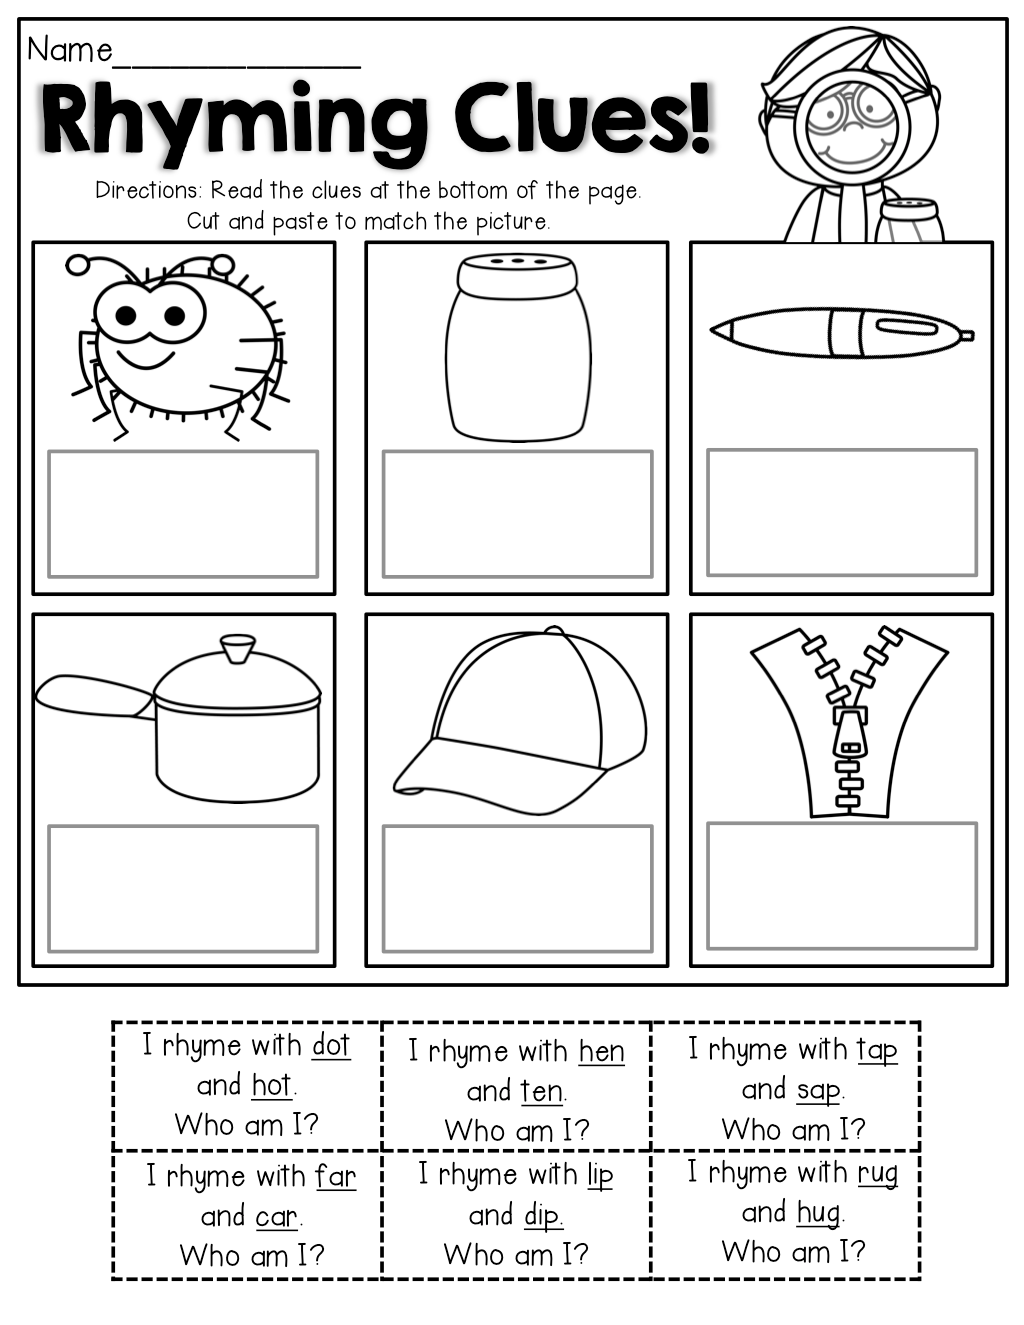 Worksheet Kindergarten Rhyming Worksheets Worksheet Fun